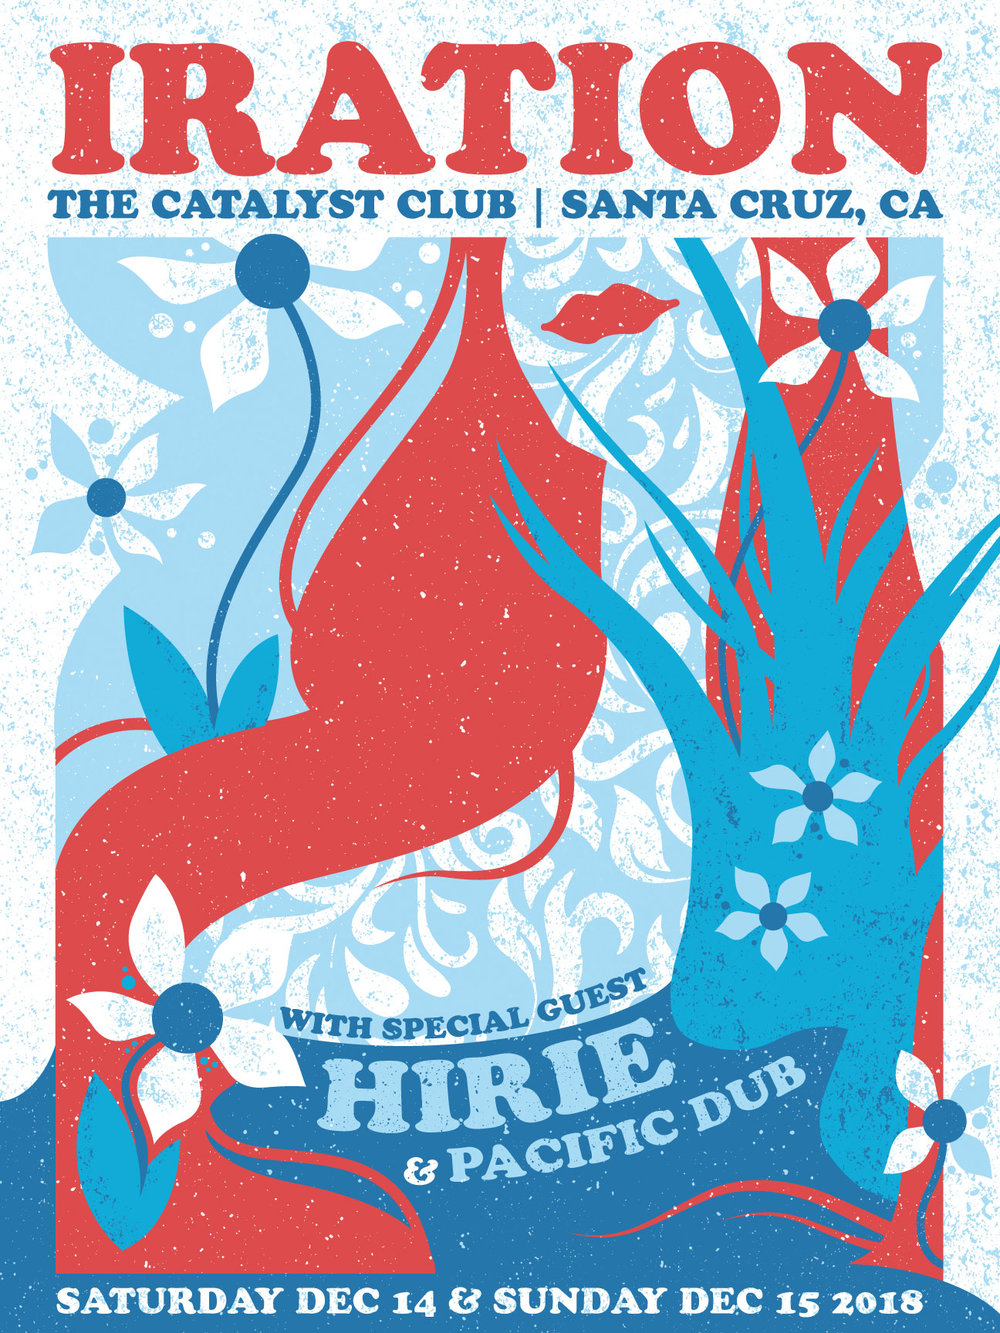 IRATION_20181214_SANTA-CRUZ_FINAL-POSTER.jpg